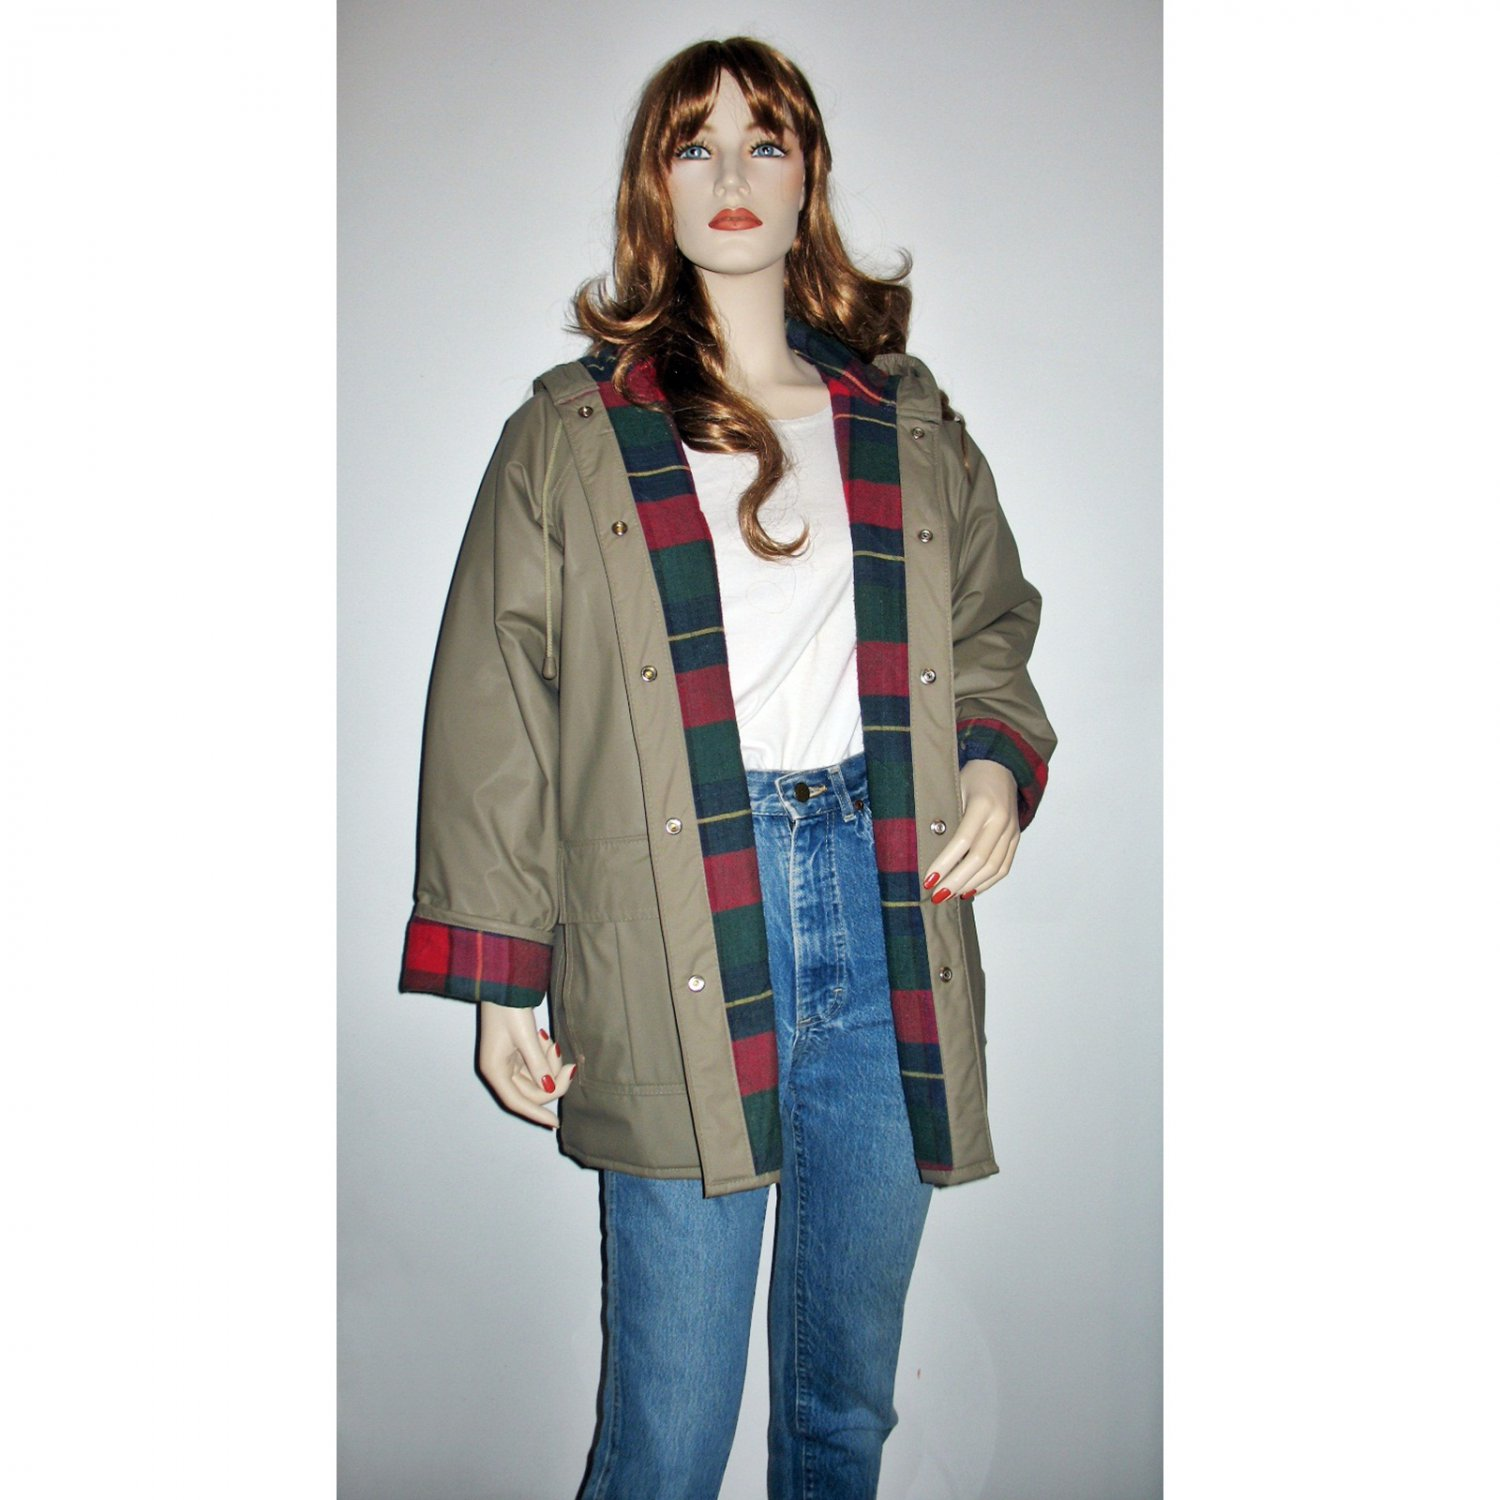 Stone PVC Hooded Raincoat with Quilted Plaid Lining